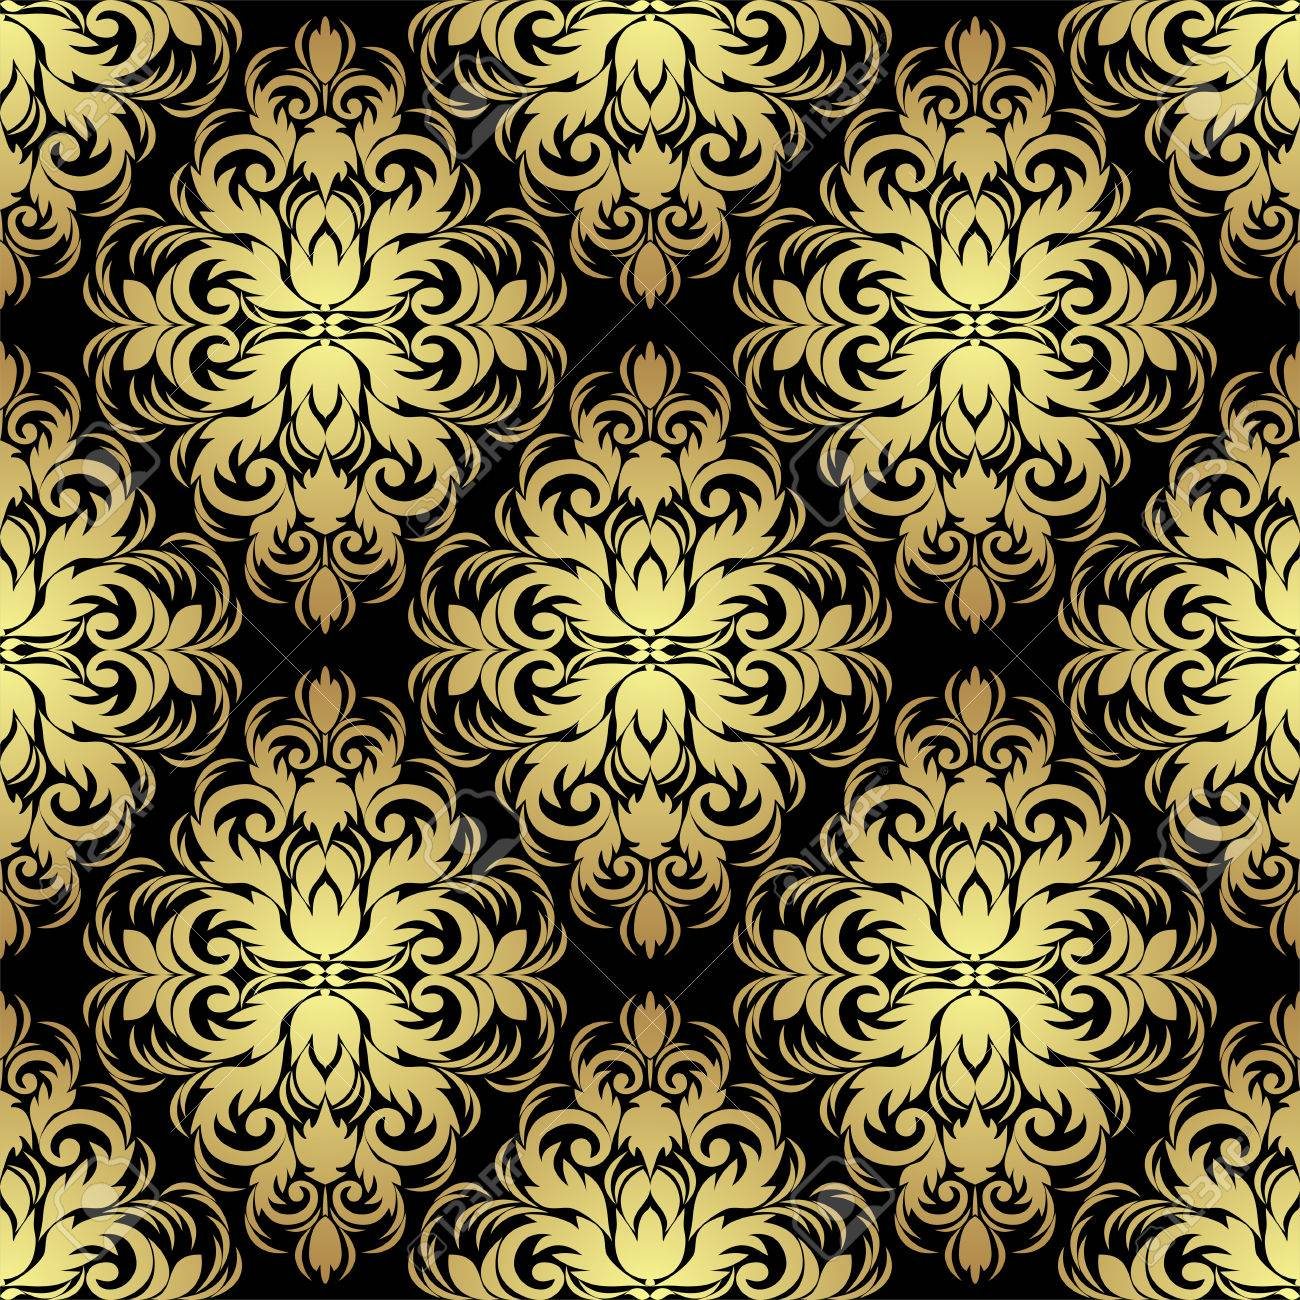 Seamless Ornate Floral Wallpaper Gold On Black Royalty Free